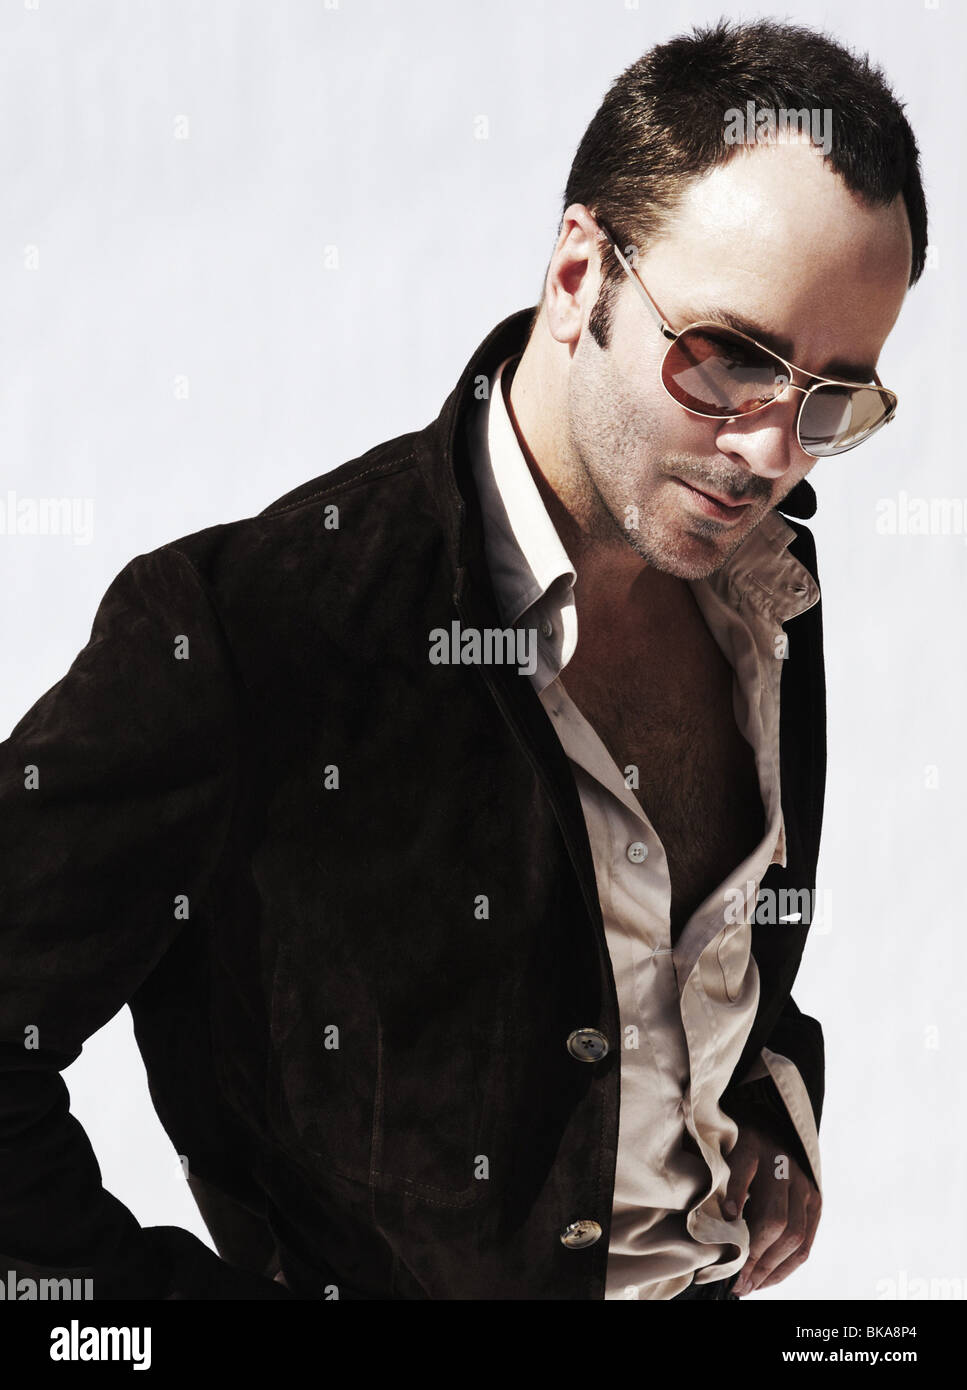 7662126451 A Single Man Year   2009 - USA Director   Tom Ford Tom Ford Stock ...